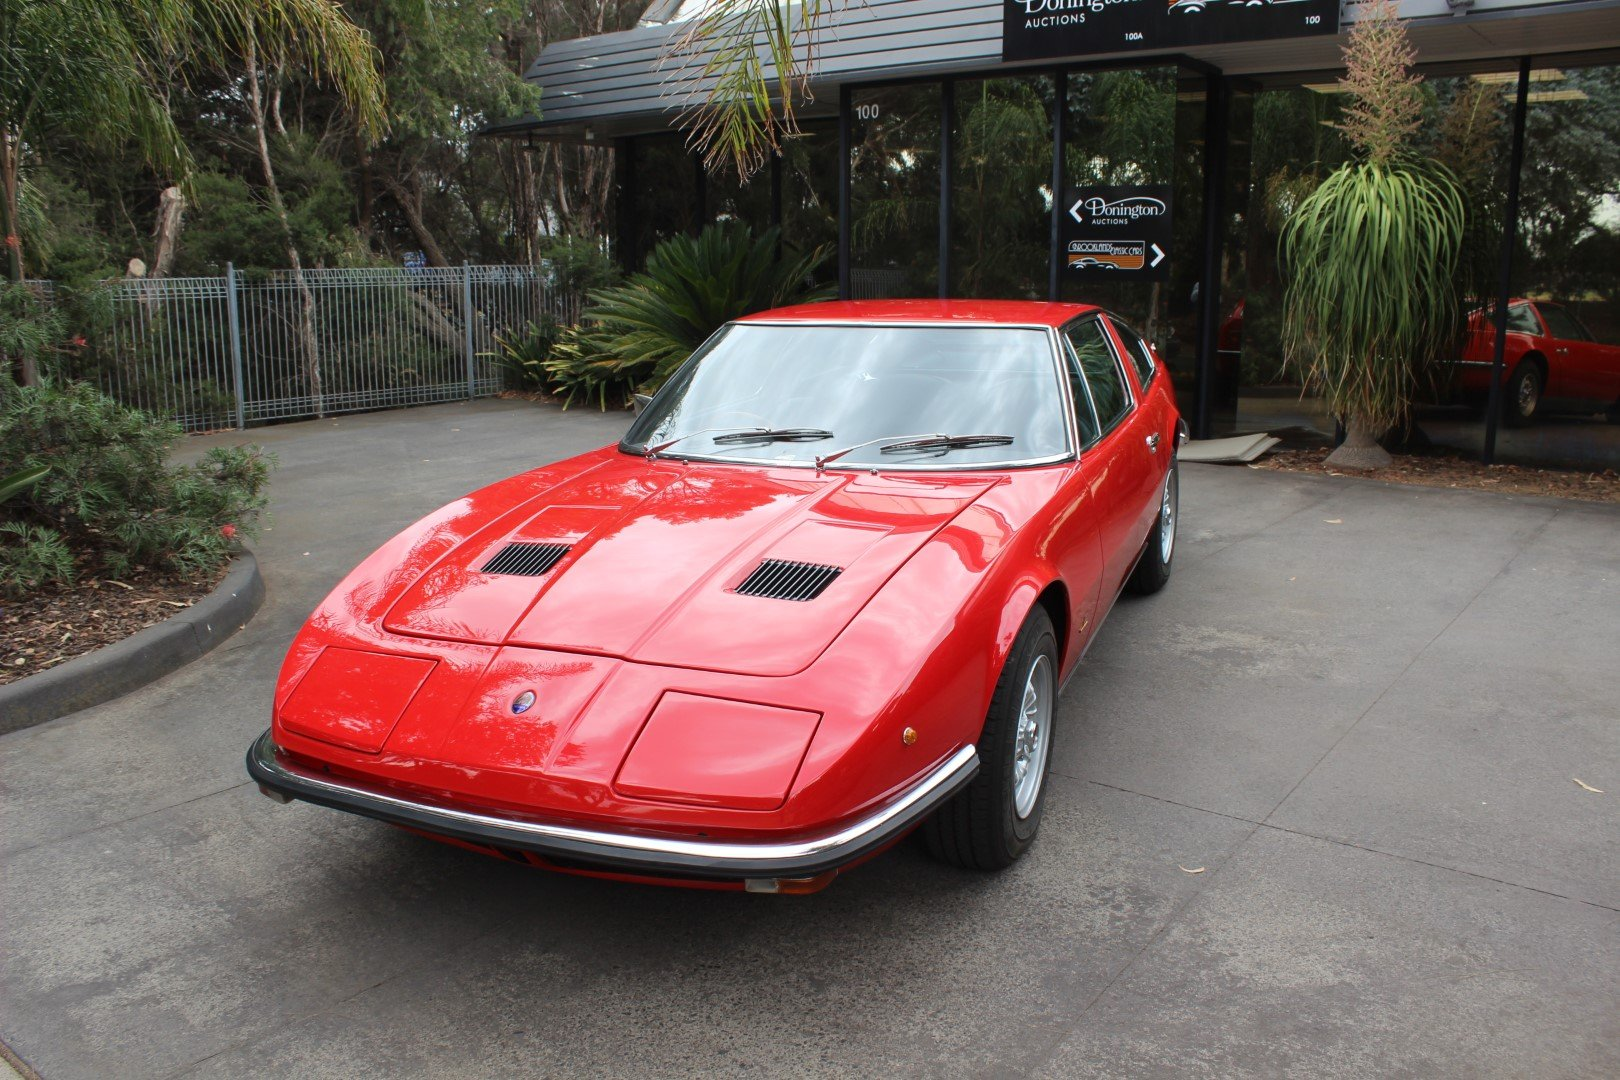 Maserati Indy 1971 For Sale (picture 2 of 6)